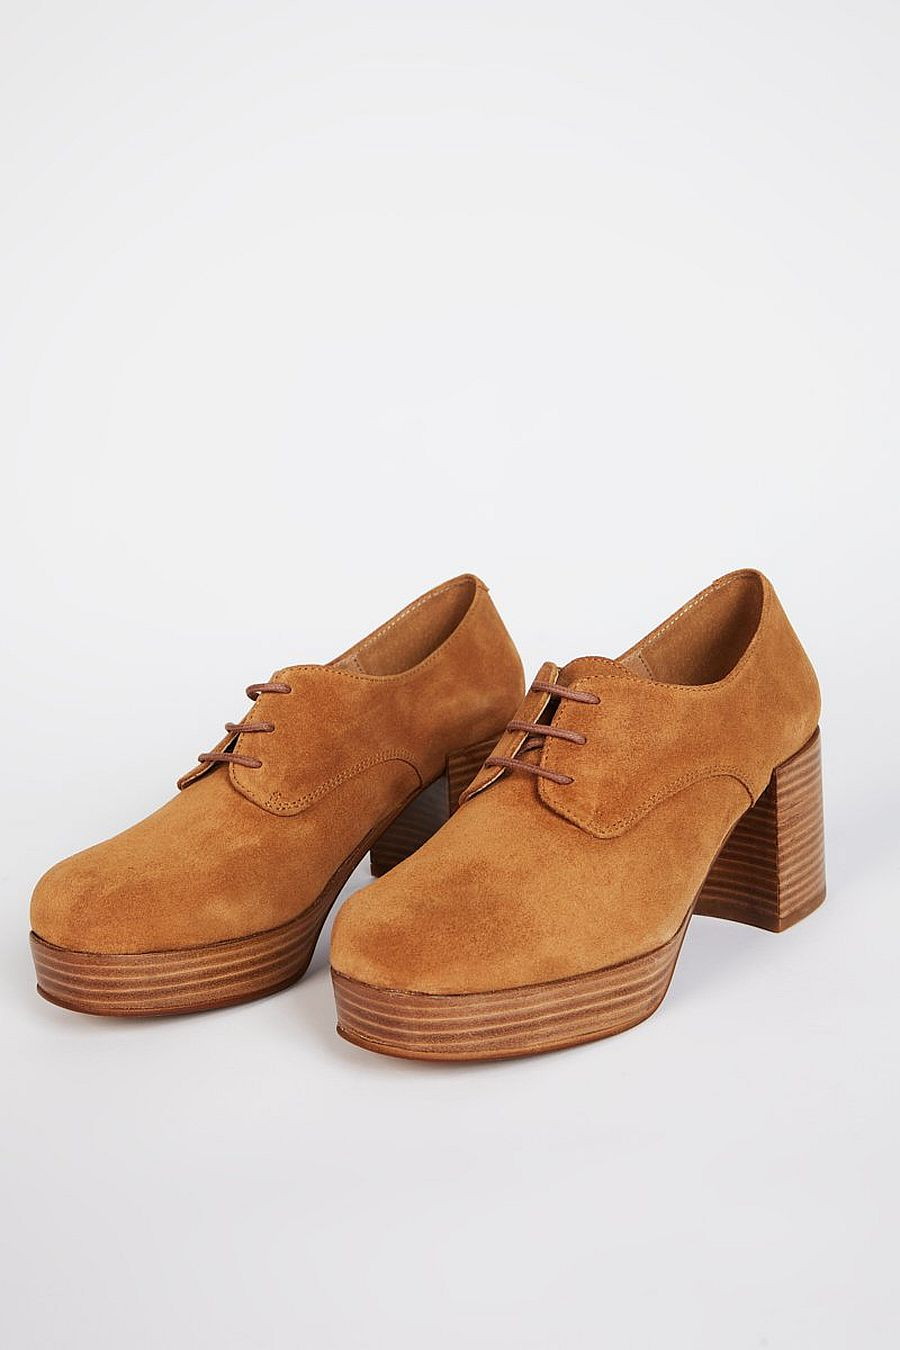 Intentionally Blank ALBANY Tan Suede